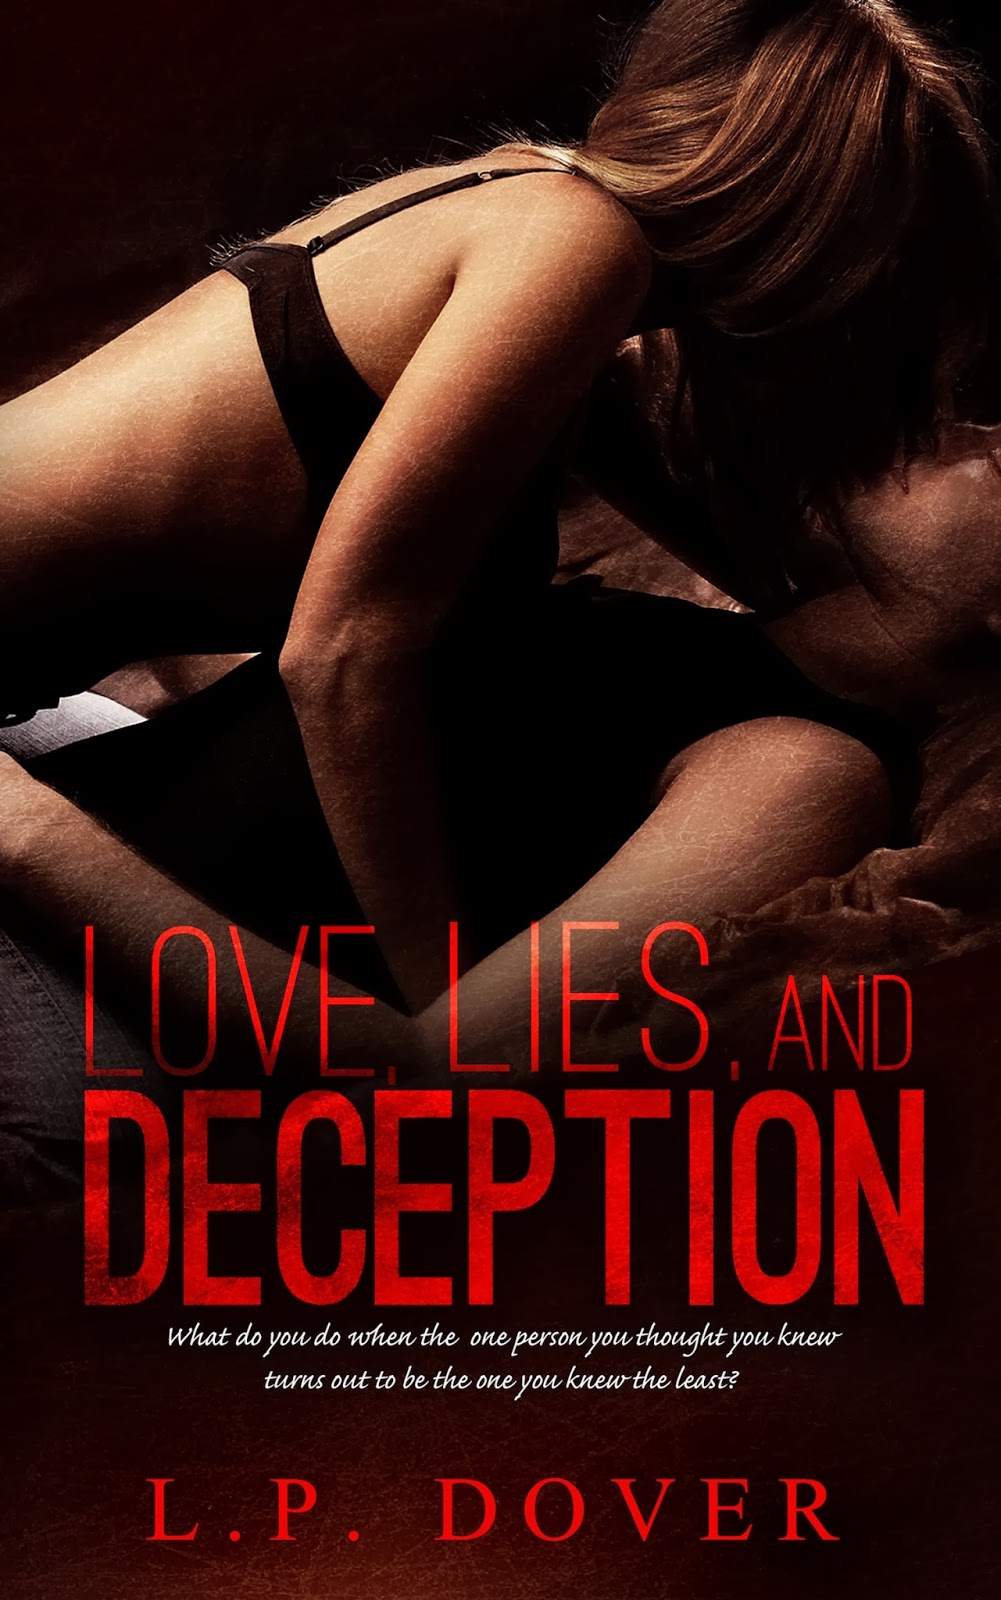 Love and lies: deception in online dating.